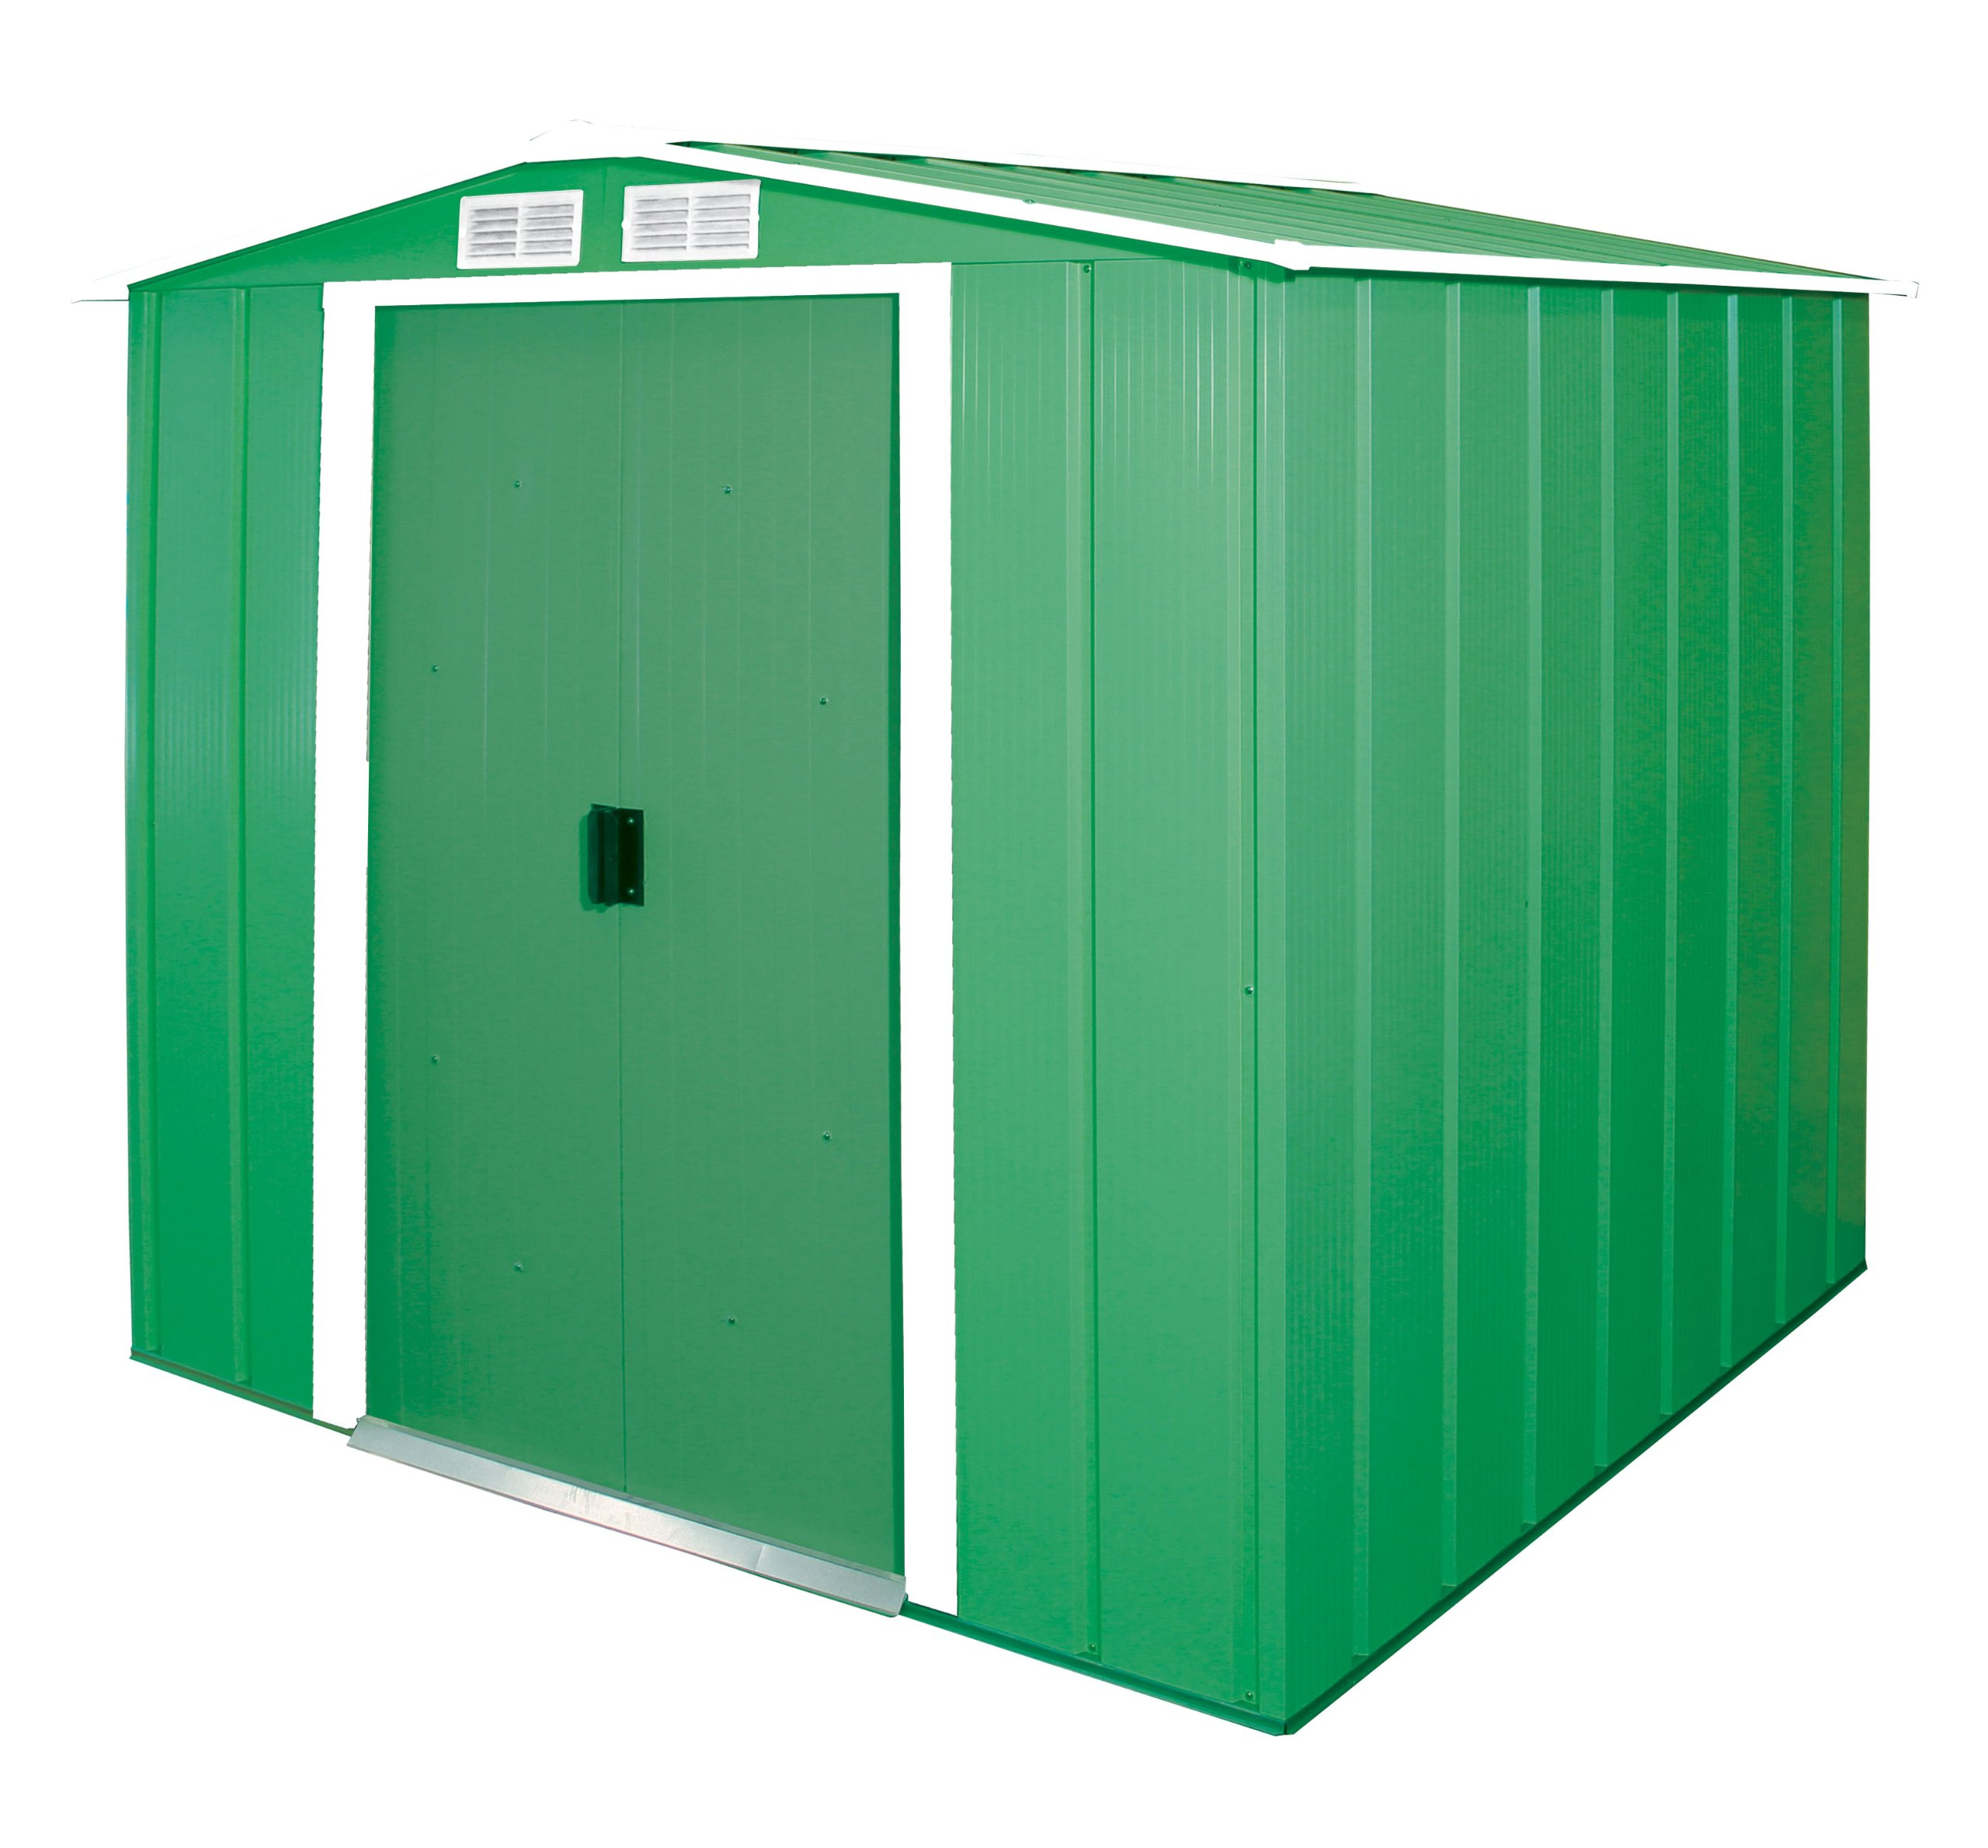 Duramax ECO 6′ x 6′ Hot-Dipped Galvanized Metal Garden Shed – Green with Off-White Trimmings – 15 Years Warranty